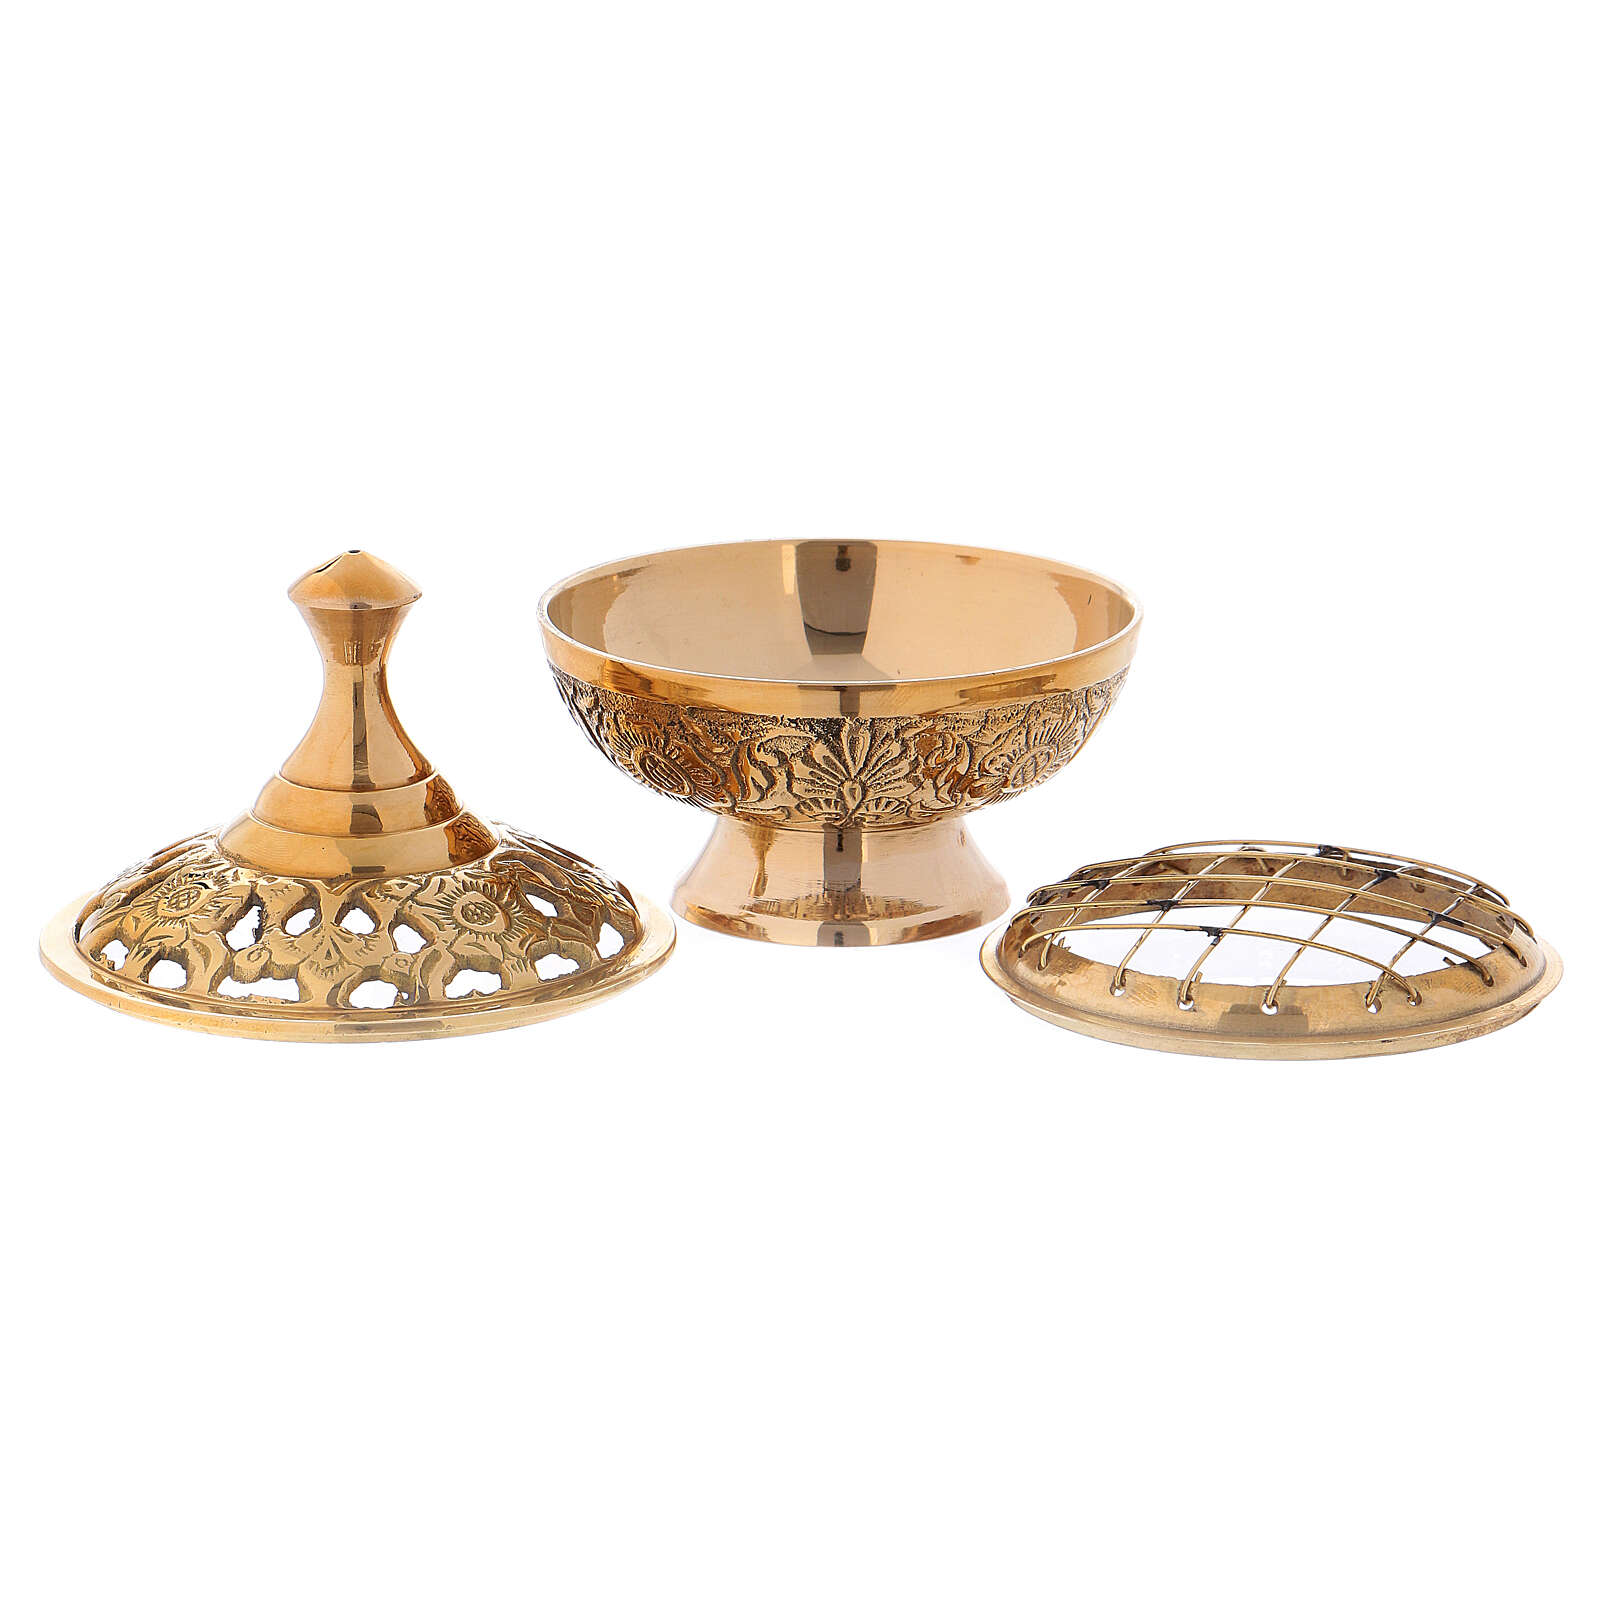 Incense burner in gold plated brass with decorated top 3